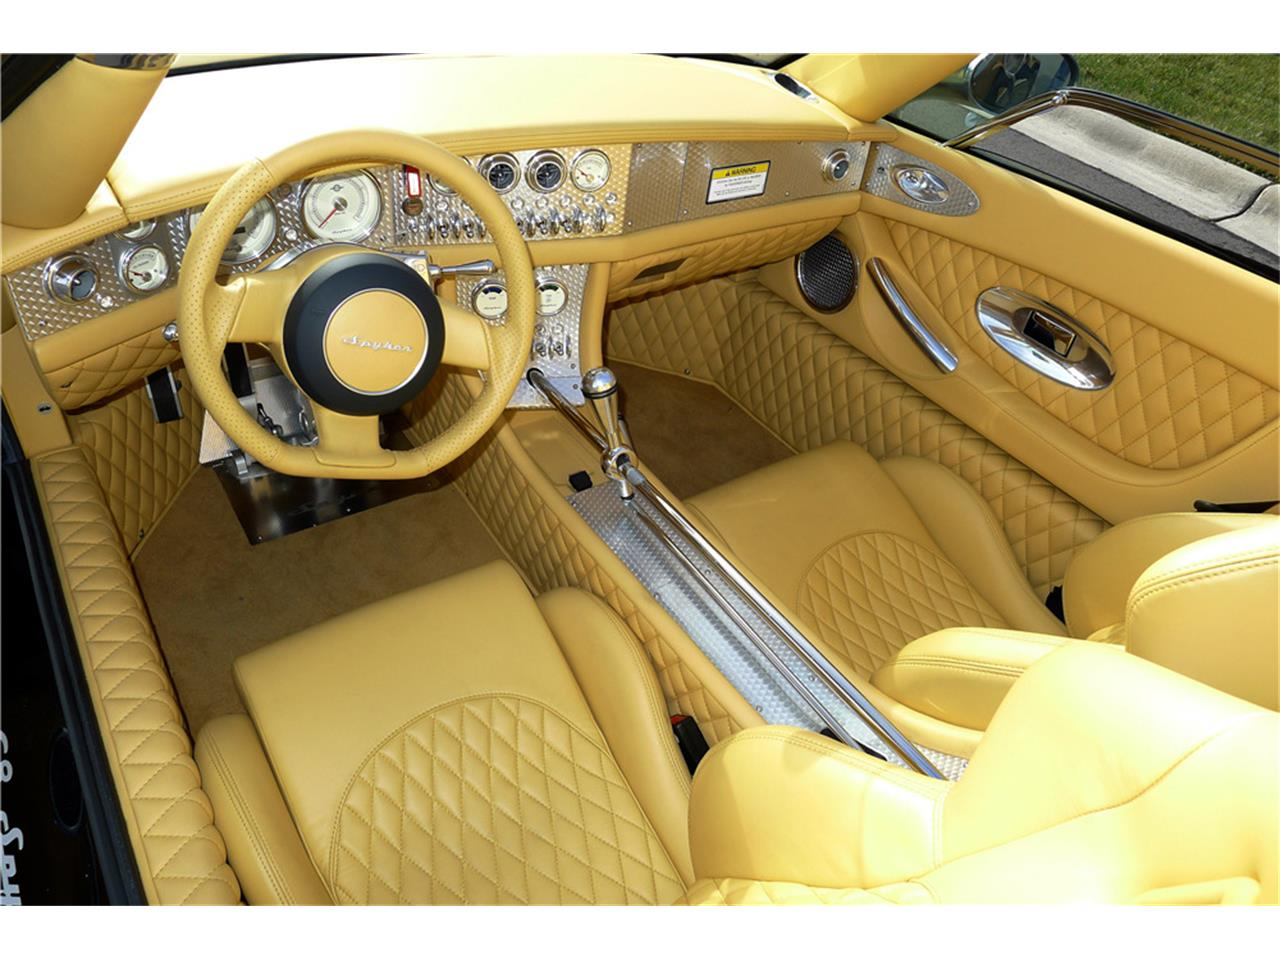 2010 Spyker C8 for sale in West Palm Beach, FL – photo 3